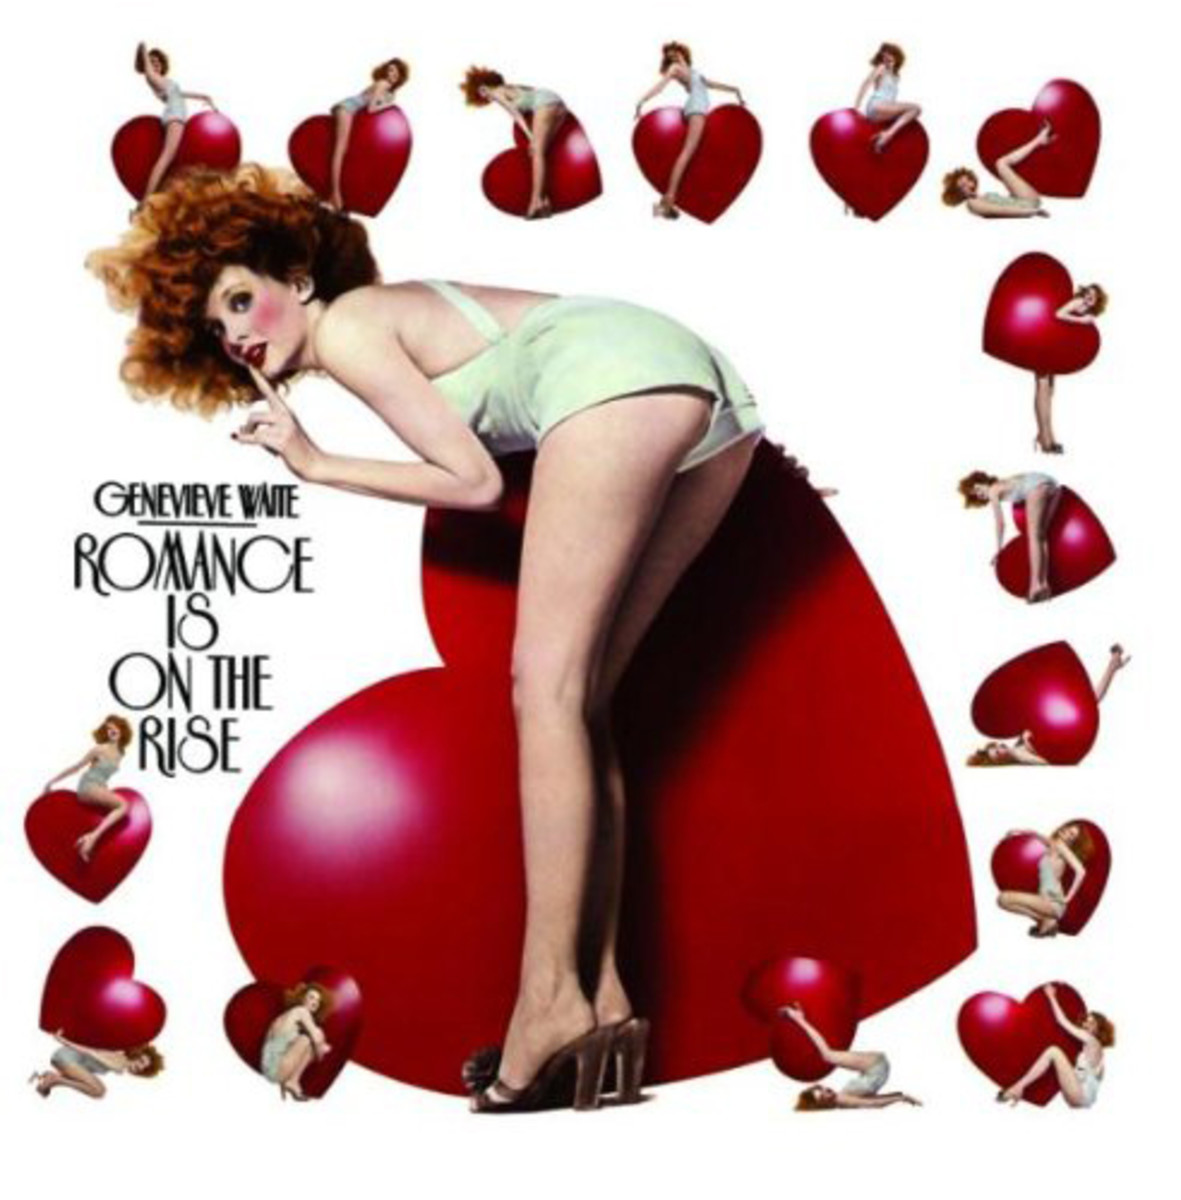 Romance Is on the Rise — Genevieve Waite